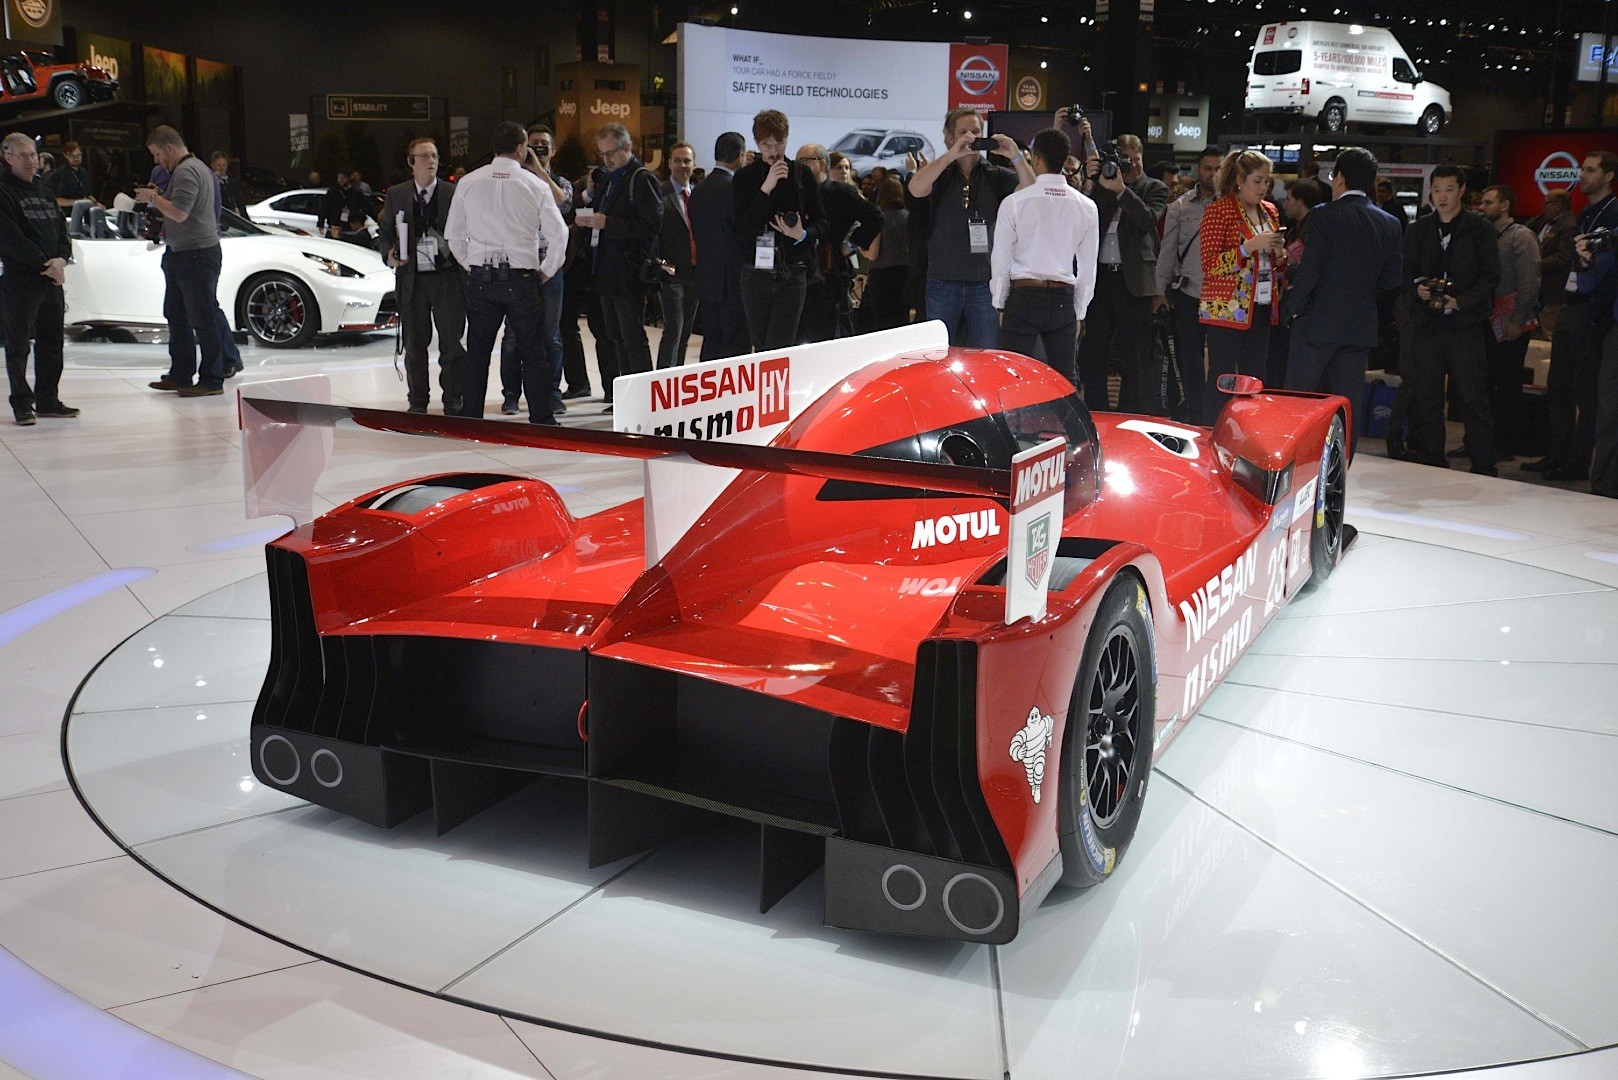 Nissan Gt R Lm Nismo Sends 1 250 Hp To The Front Wheels In